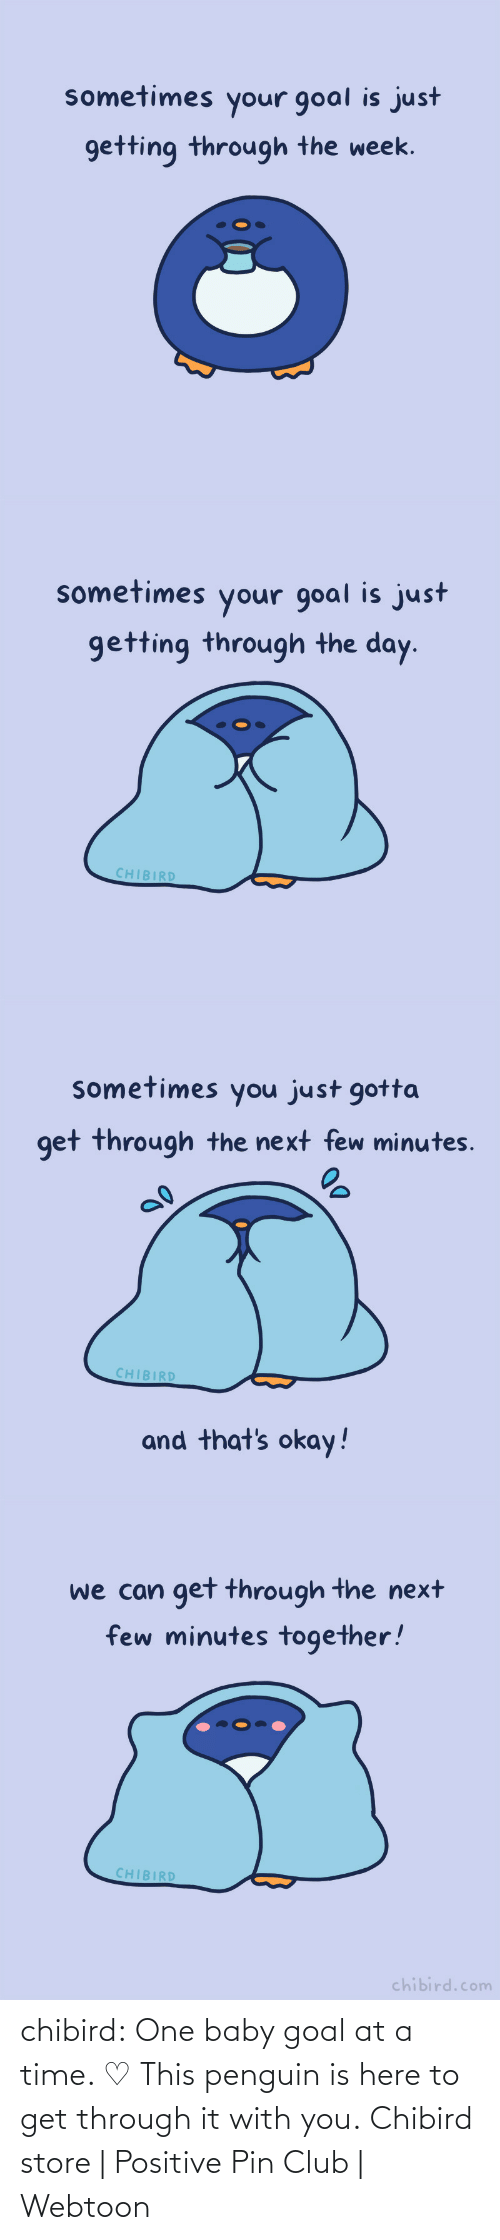 with you: chibird:  One baby goal at a time. ♡ This penguin is here to get through it with you.  Chibird store | Positive Pin Club | Webtoon